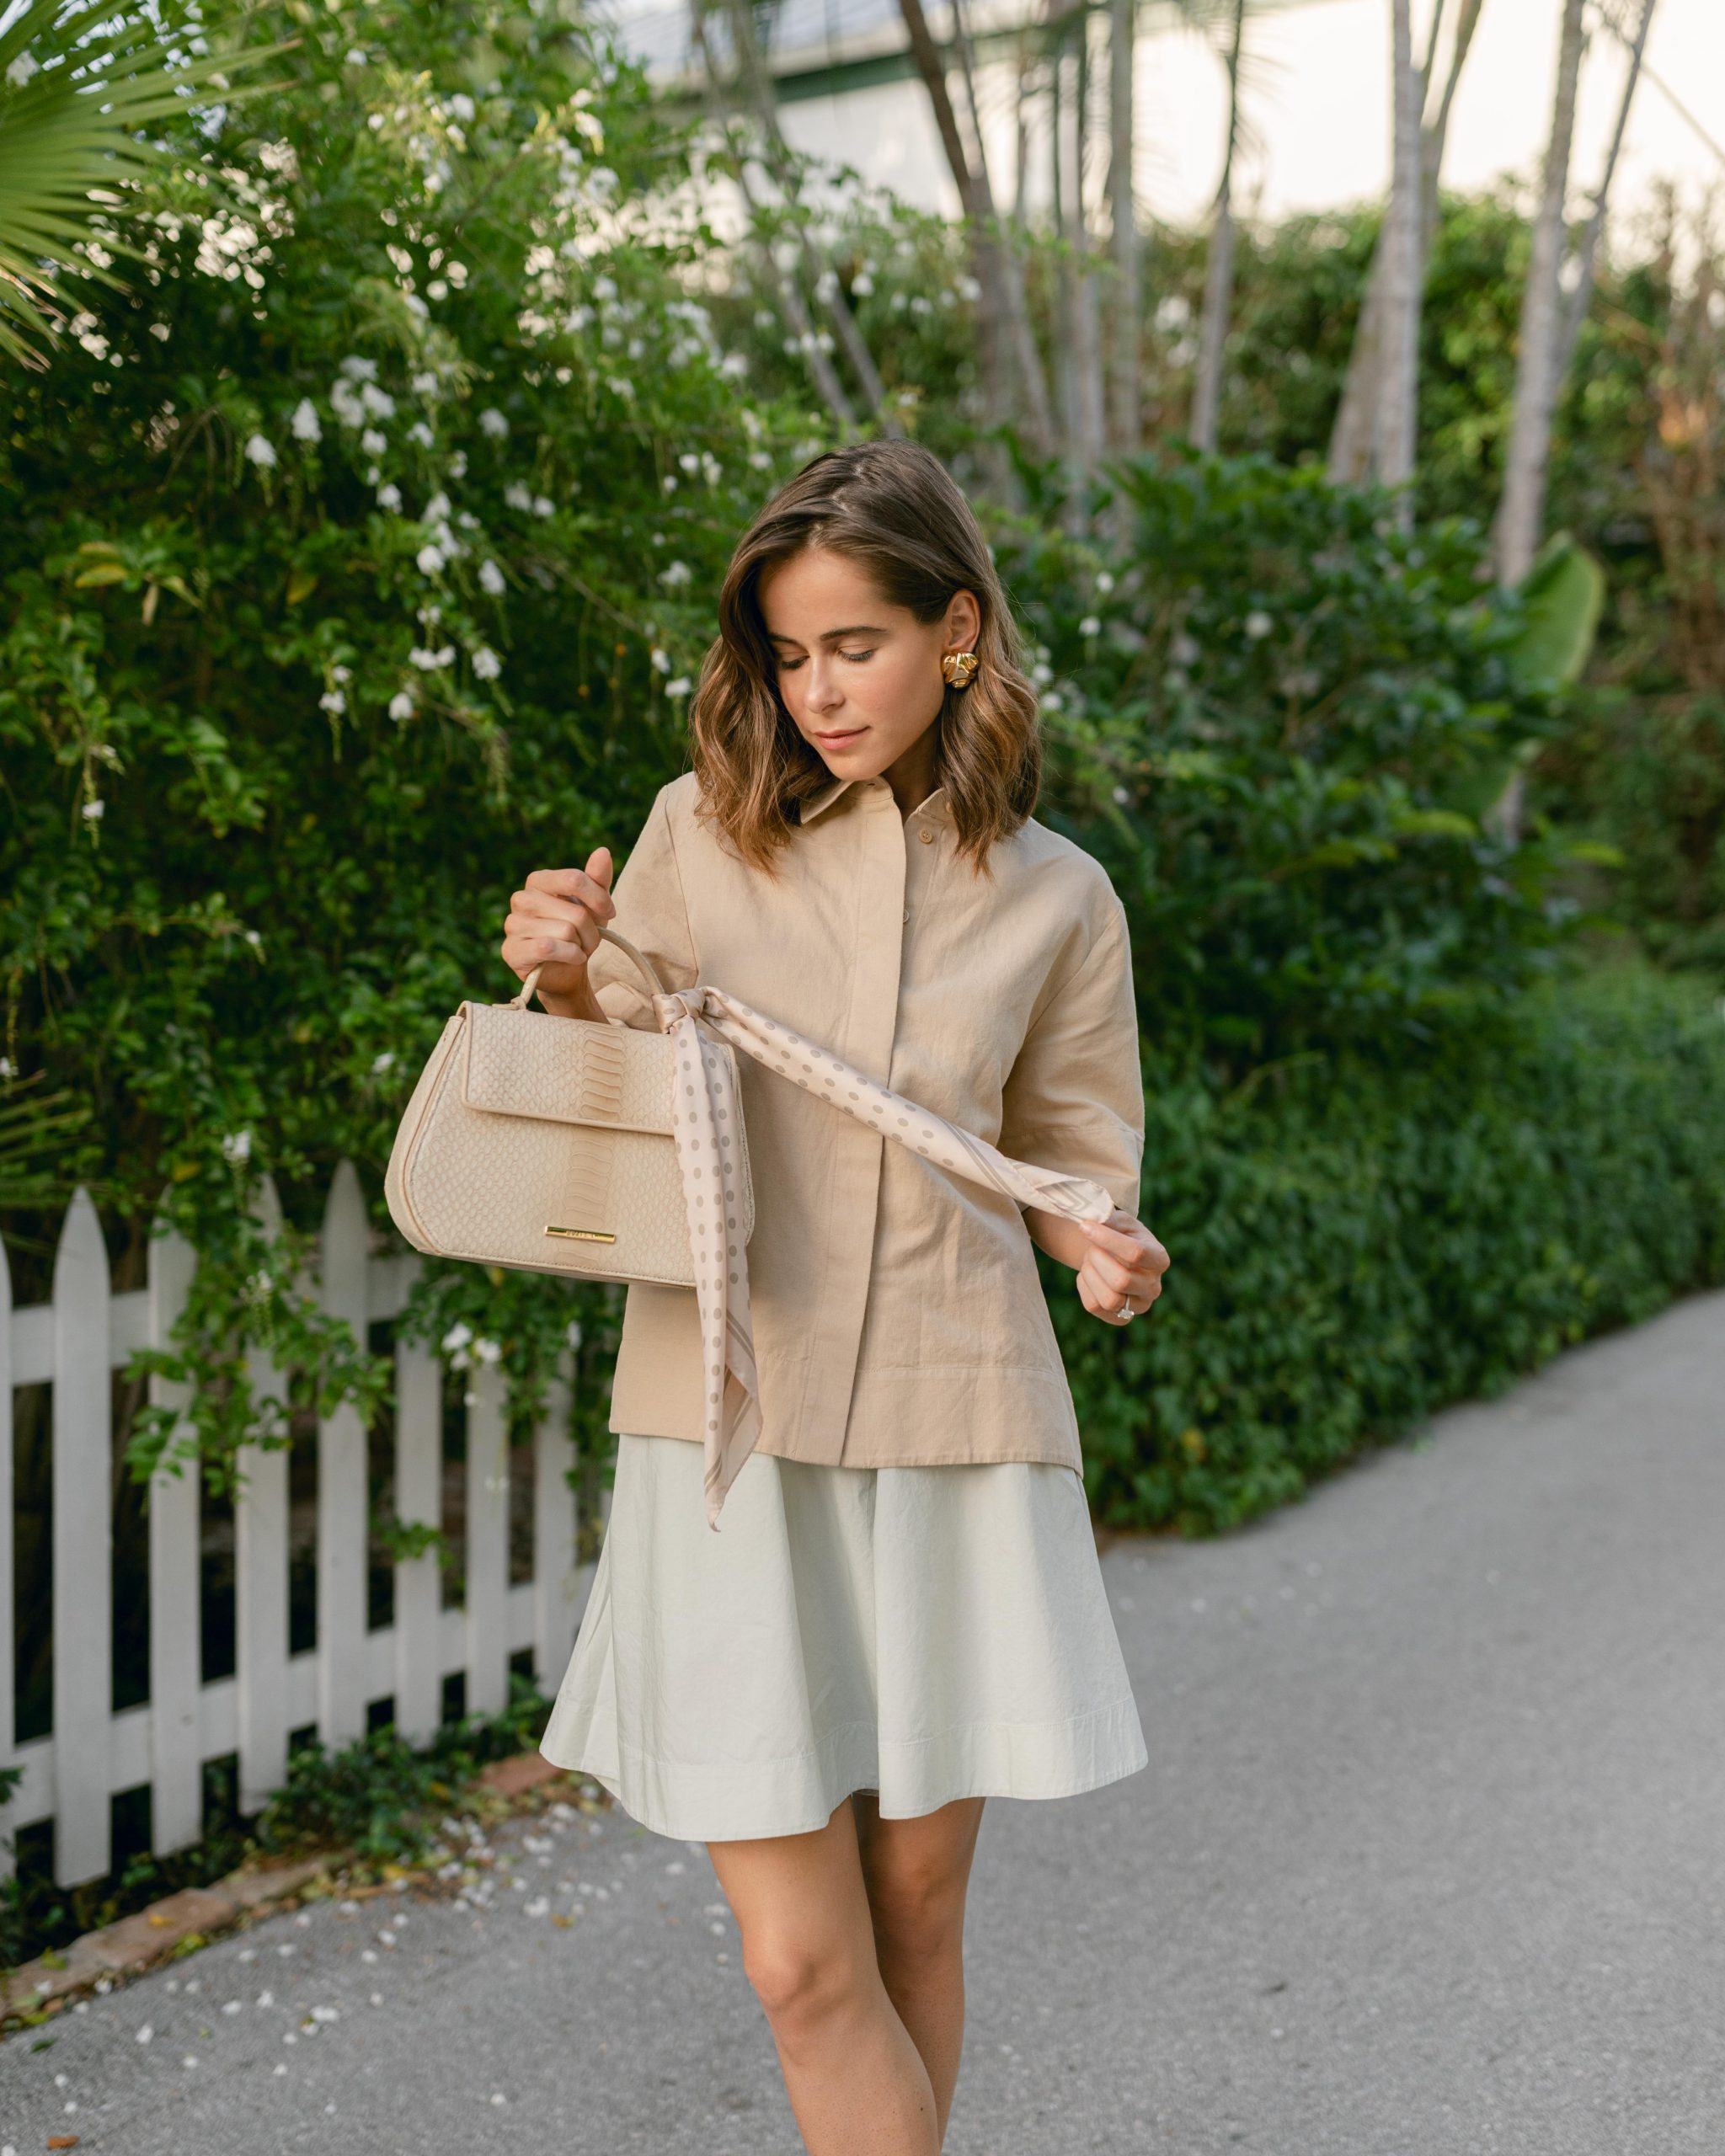 Style Blogger Stephanie Hill features What's In My Handbag on The Style Bungalow